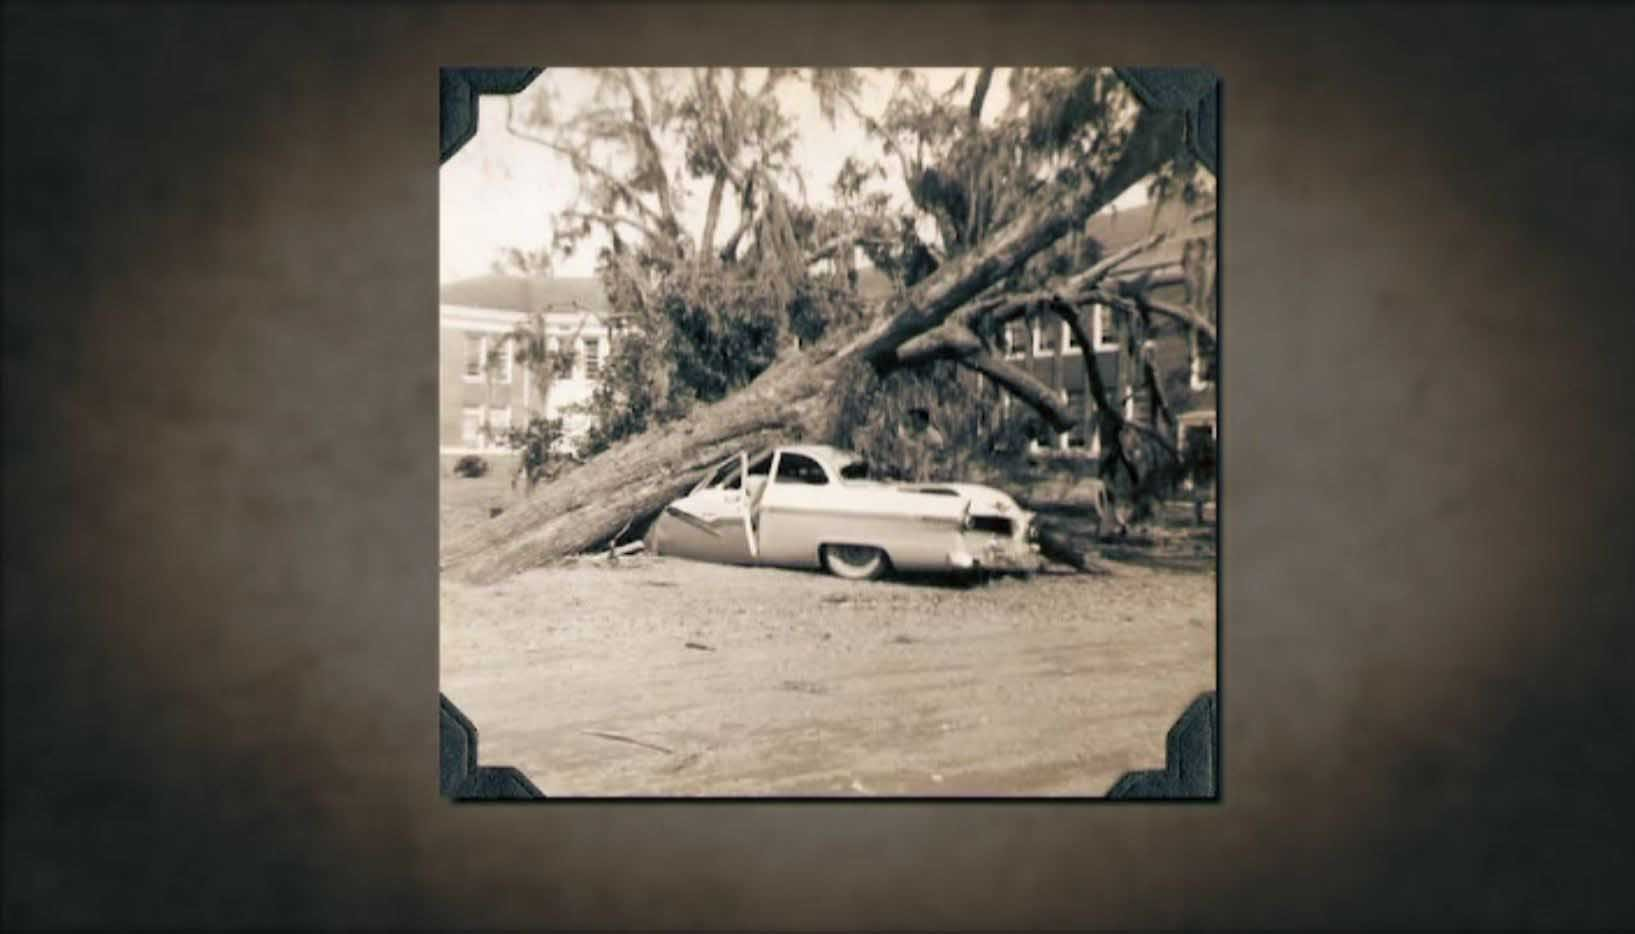 It's rare for major hurricanes to hit the Carolinas. But with Florence headed that way, here's a look back at how similar storms have impacted the states. (Source: Archive.org/CNN)